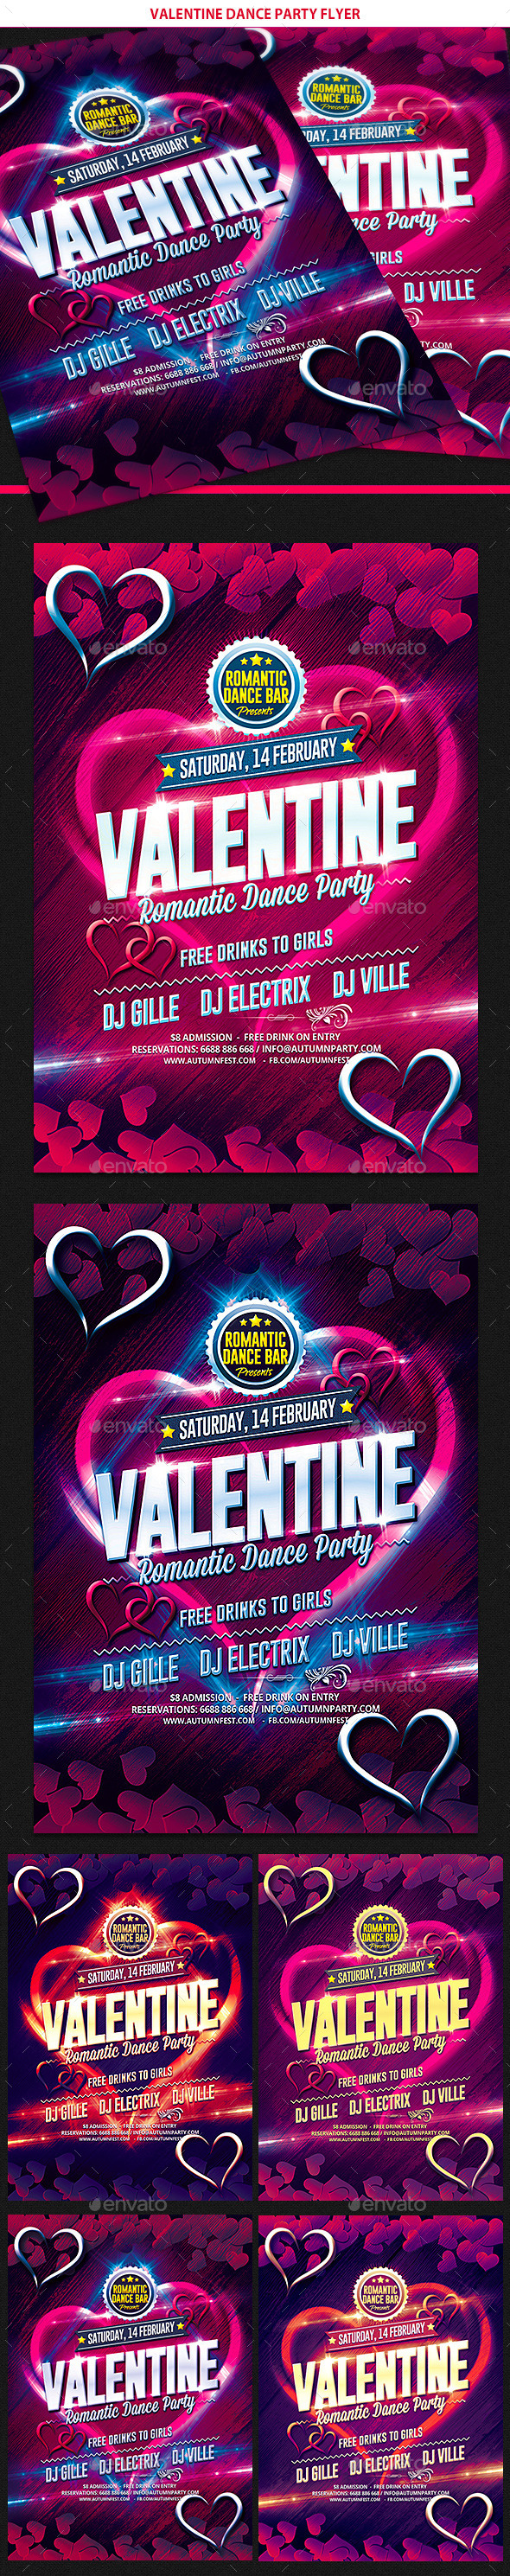 Valentines Day Dance Party Flyer - Clubs & Parties Events